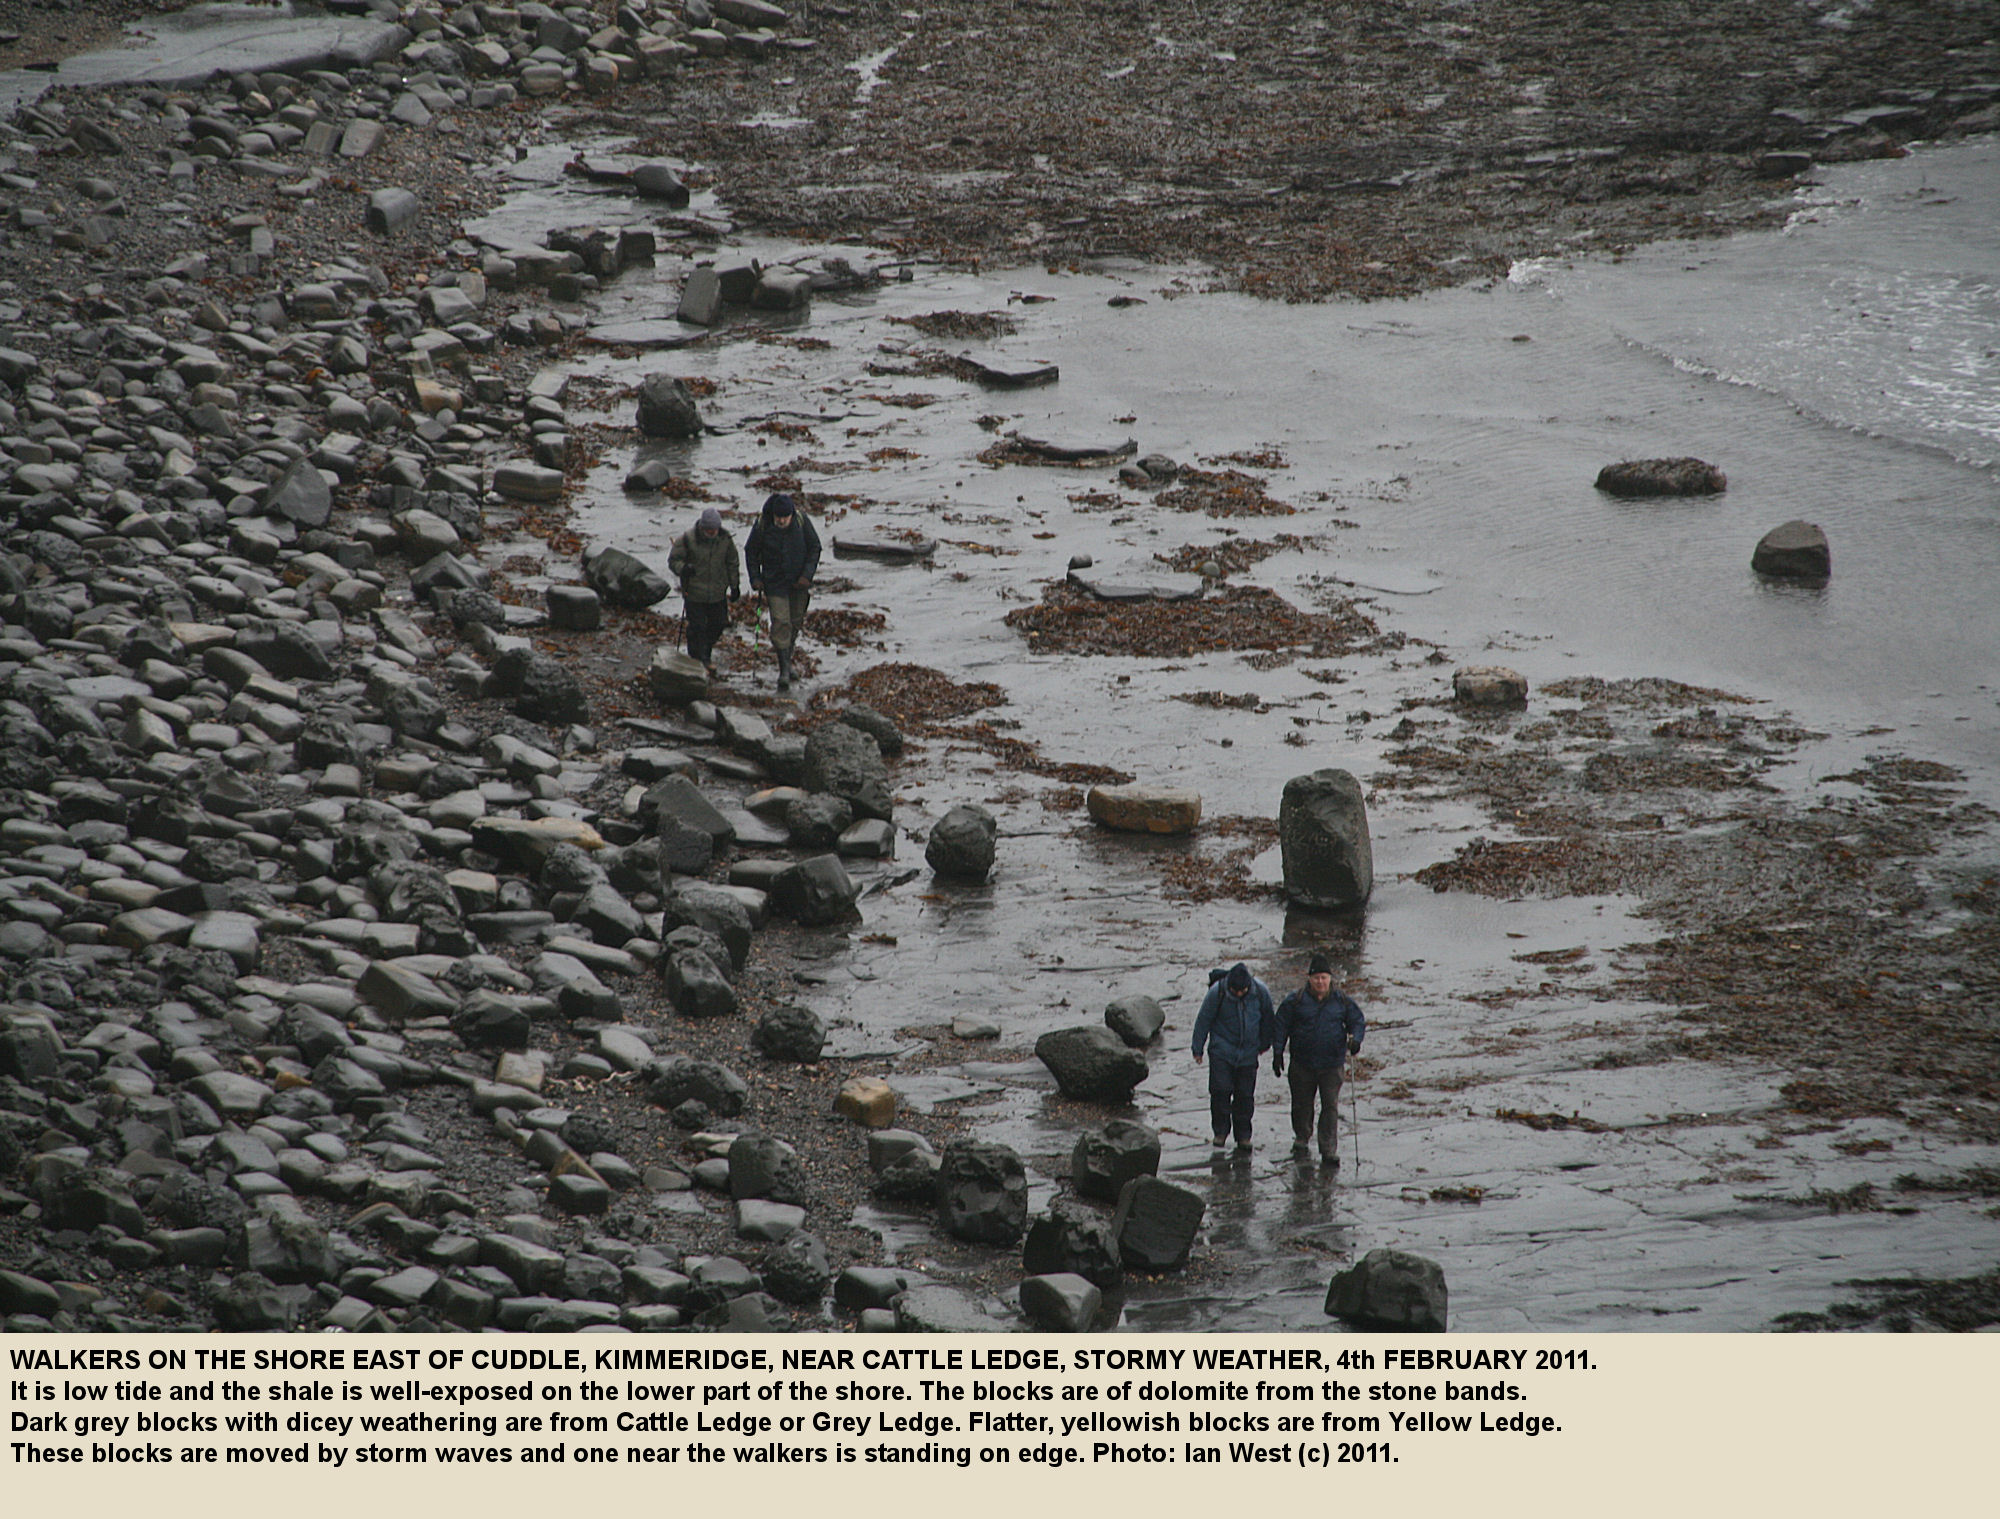 Ikea Drehstuhl Bürostuhl Nominell ~ Walkers on the shore east of Cuddle Kimmeridge in stormy conditions